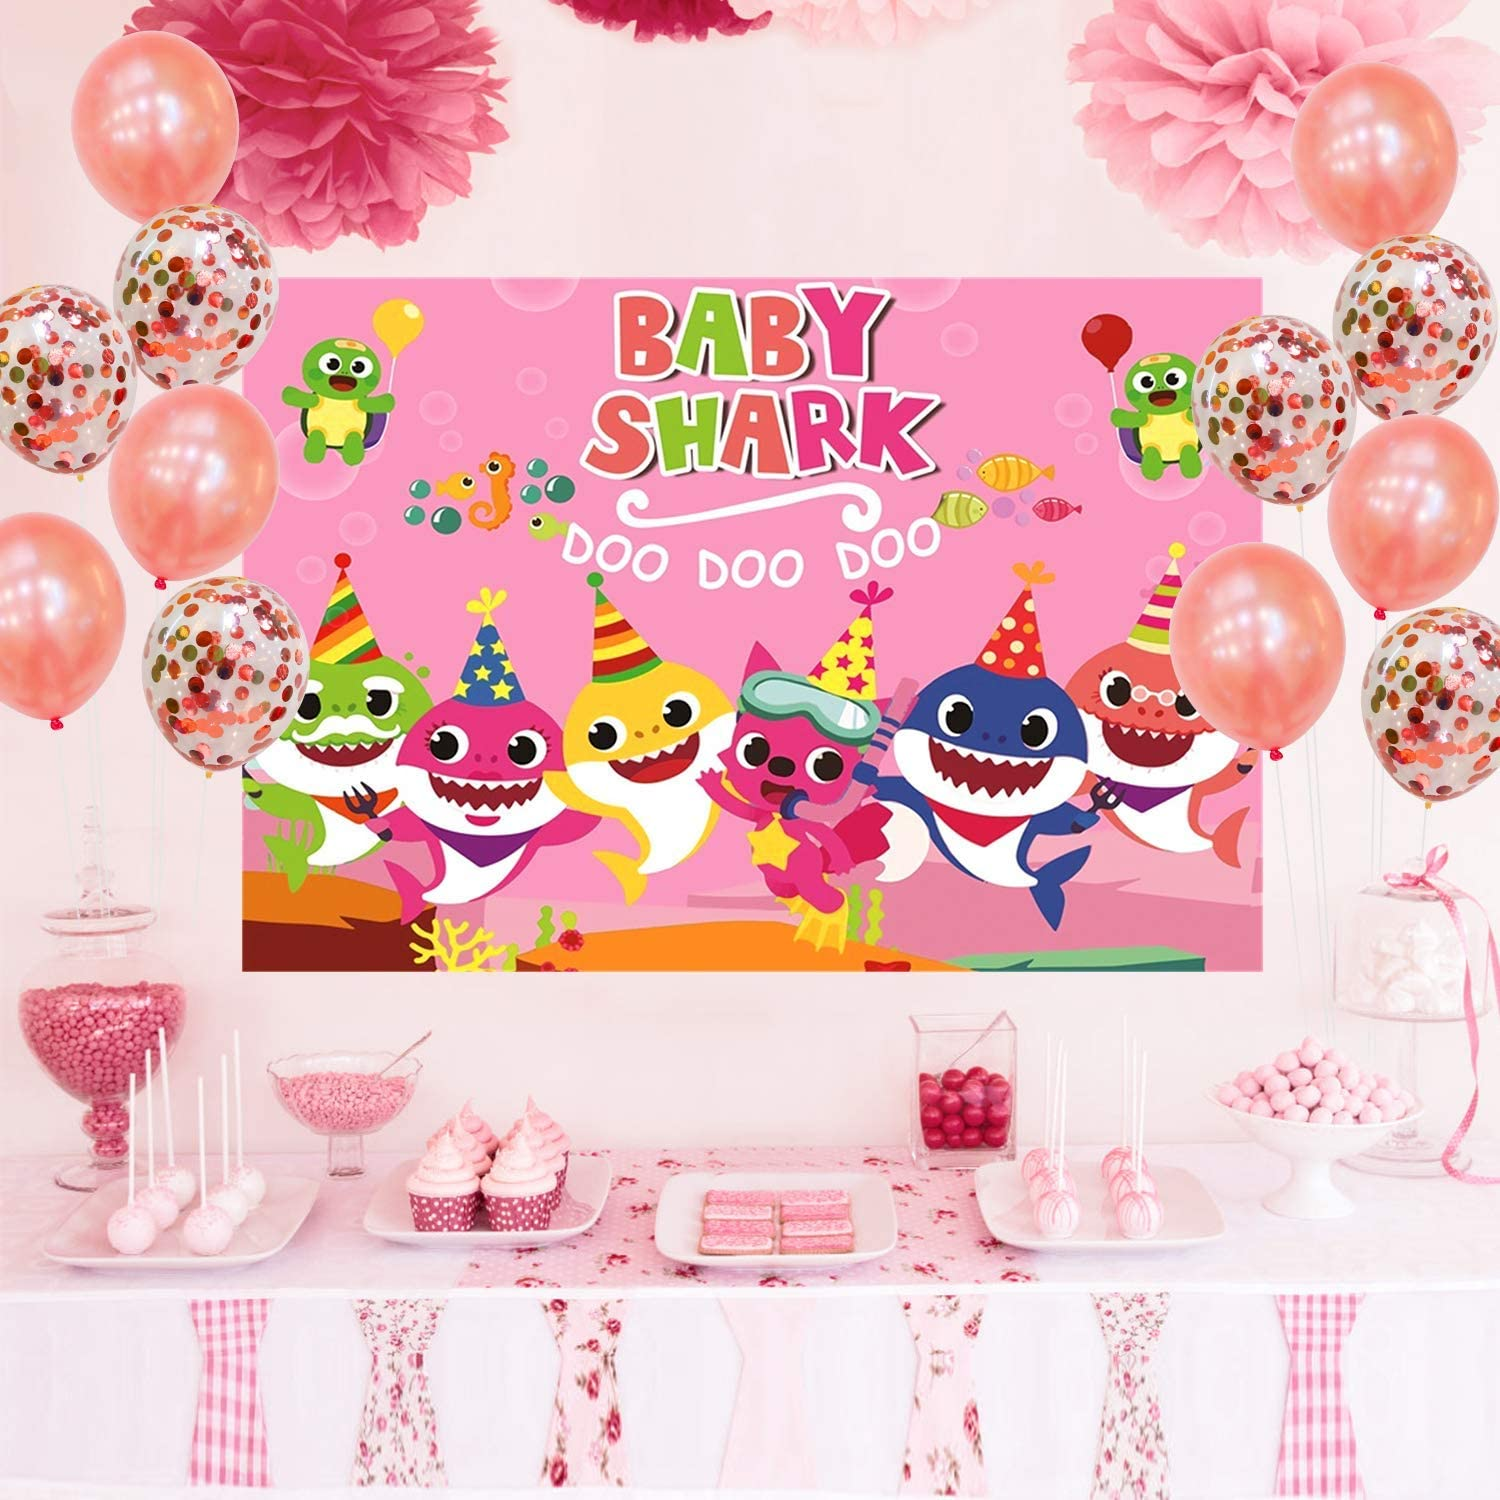 Doo Doo Doo Fabric Heavy Duty Pink Baby Shark Photo Happy Birthday Banner with Bonus Table Cover for Girl for Children Party Photography Backdrops Decorations of Ocean